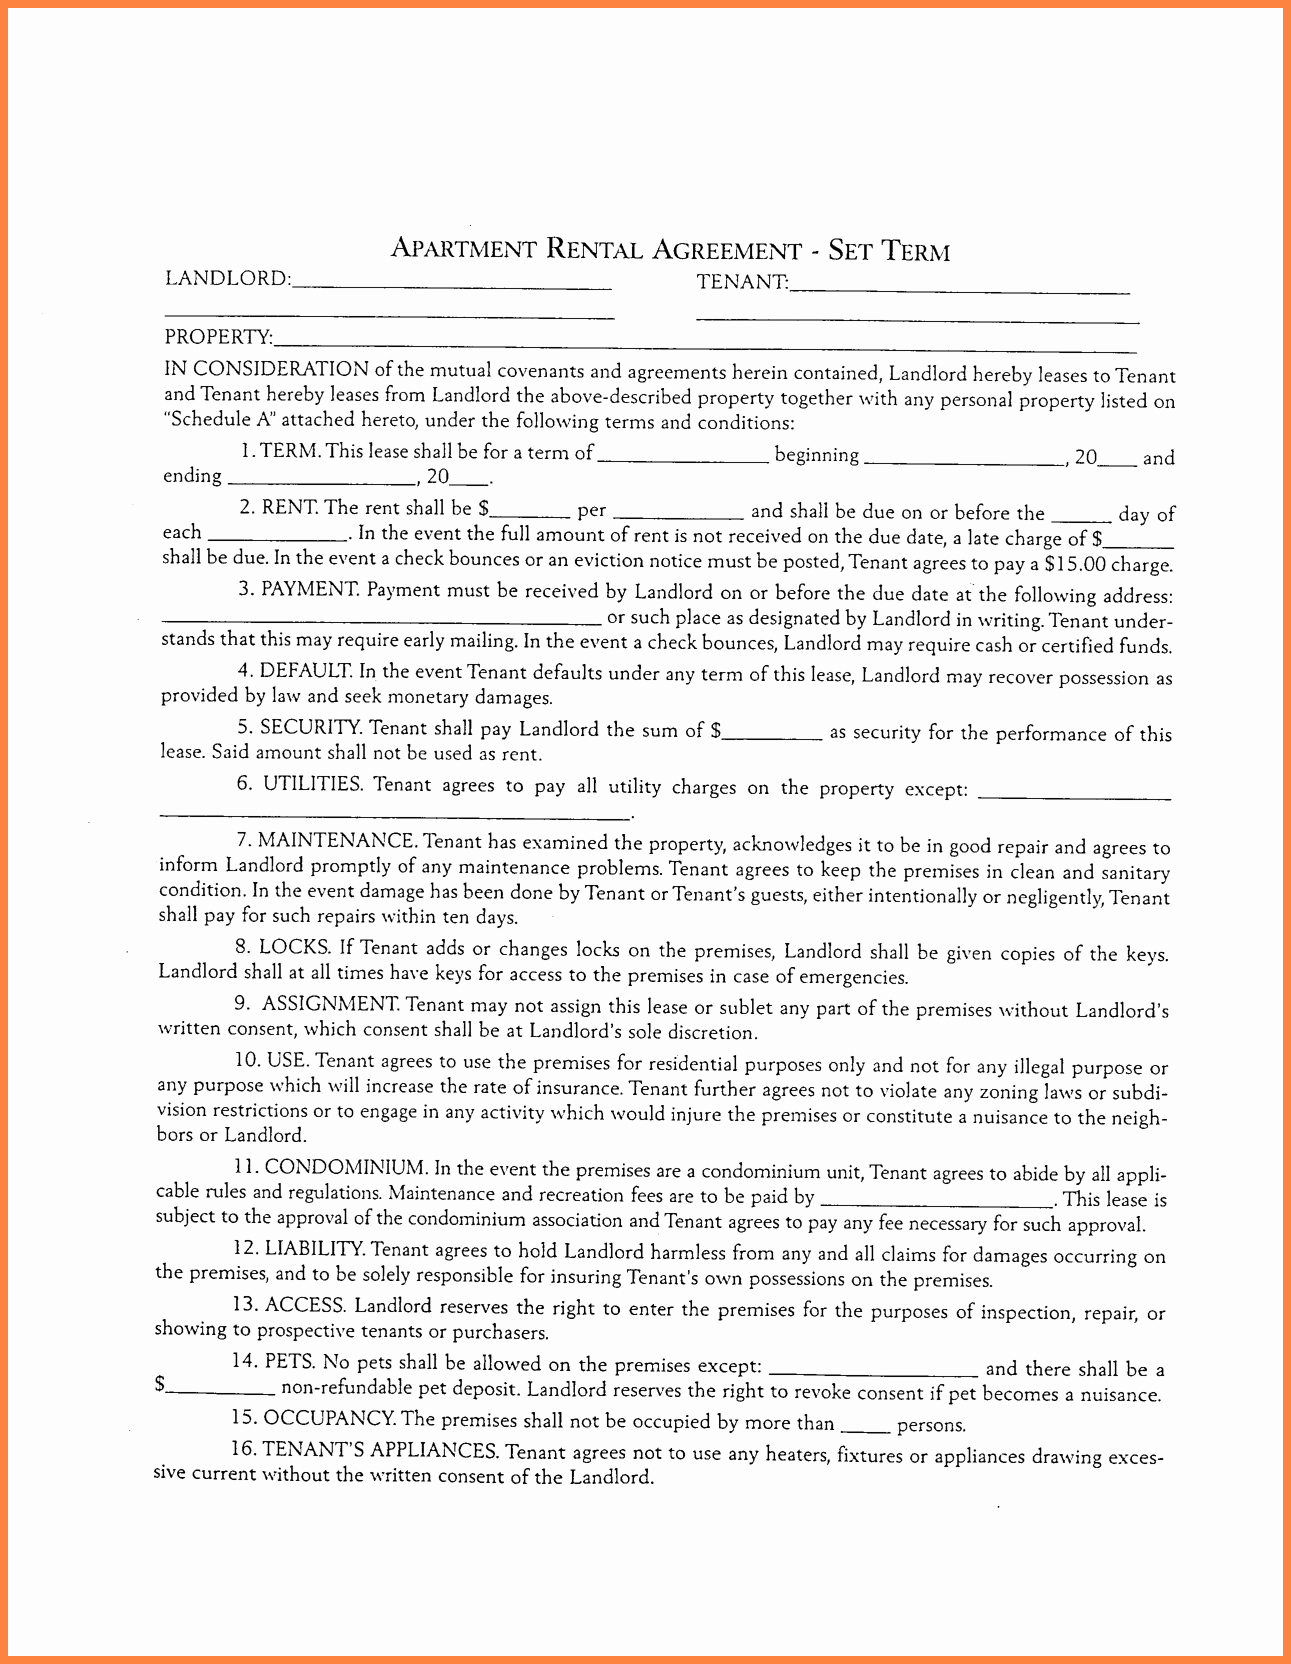 7 Apartment Rental Agreement Template Word